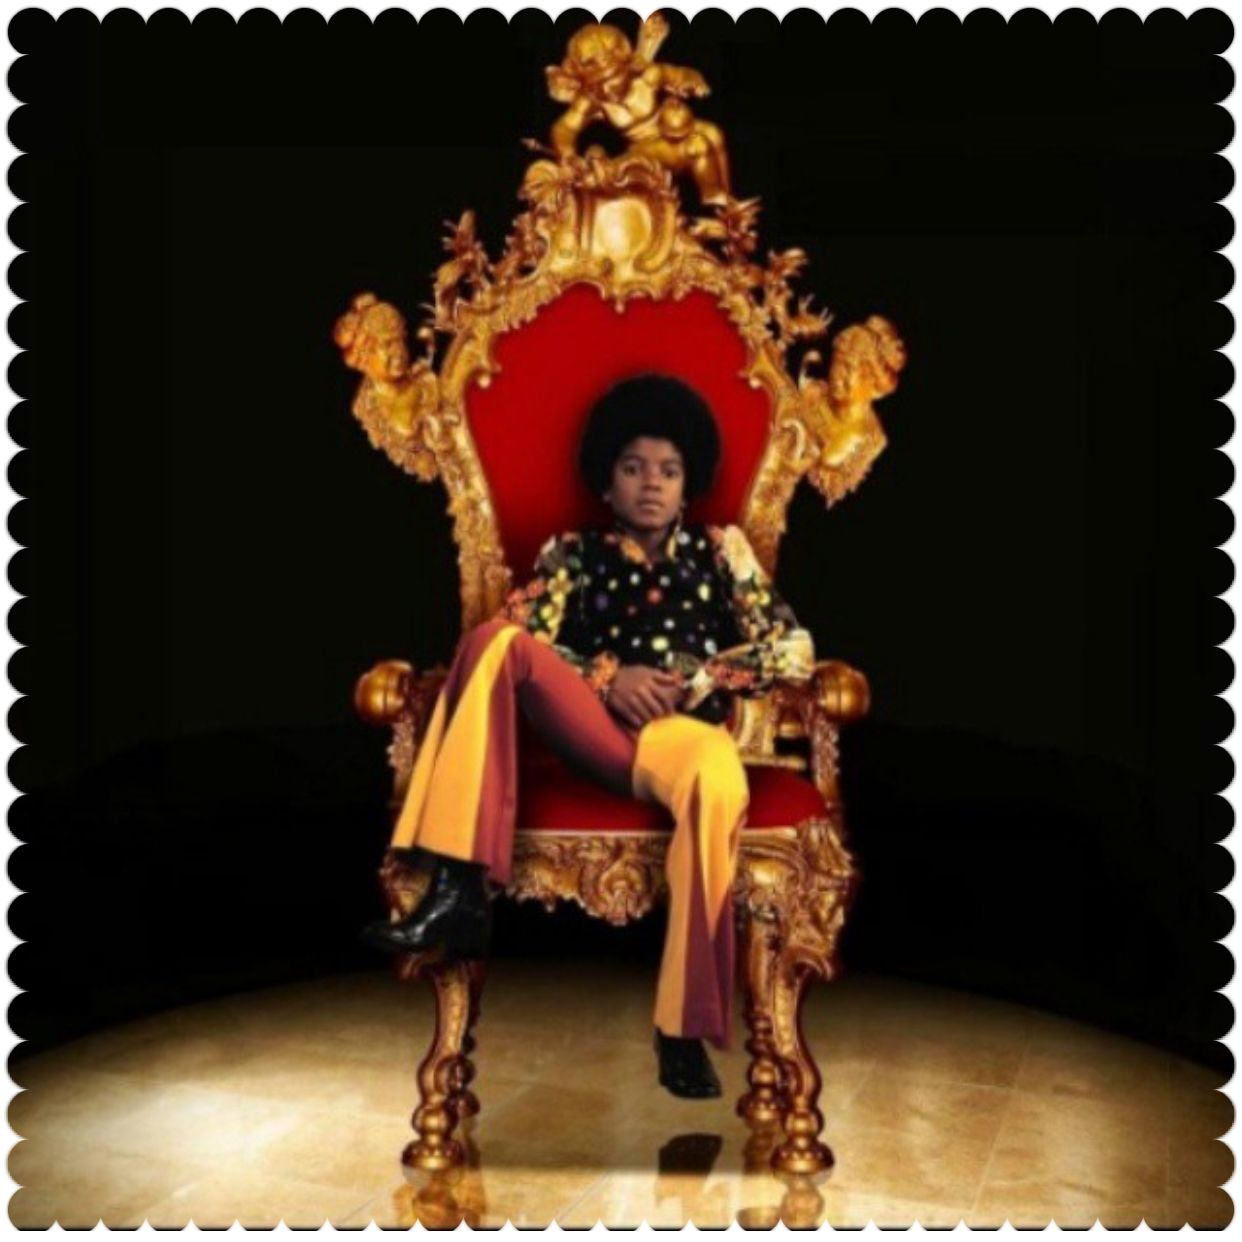 Michael Jackson In The King Chair Michael Jackson Michael Jackson Album Covers Micheal Jackson